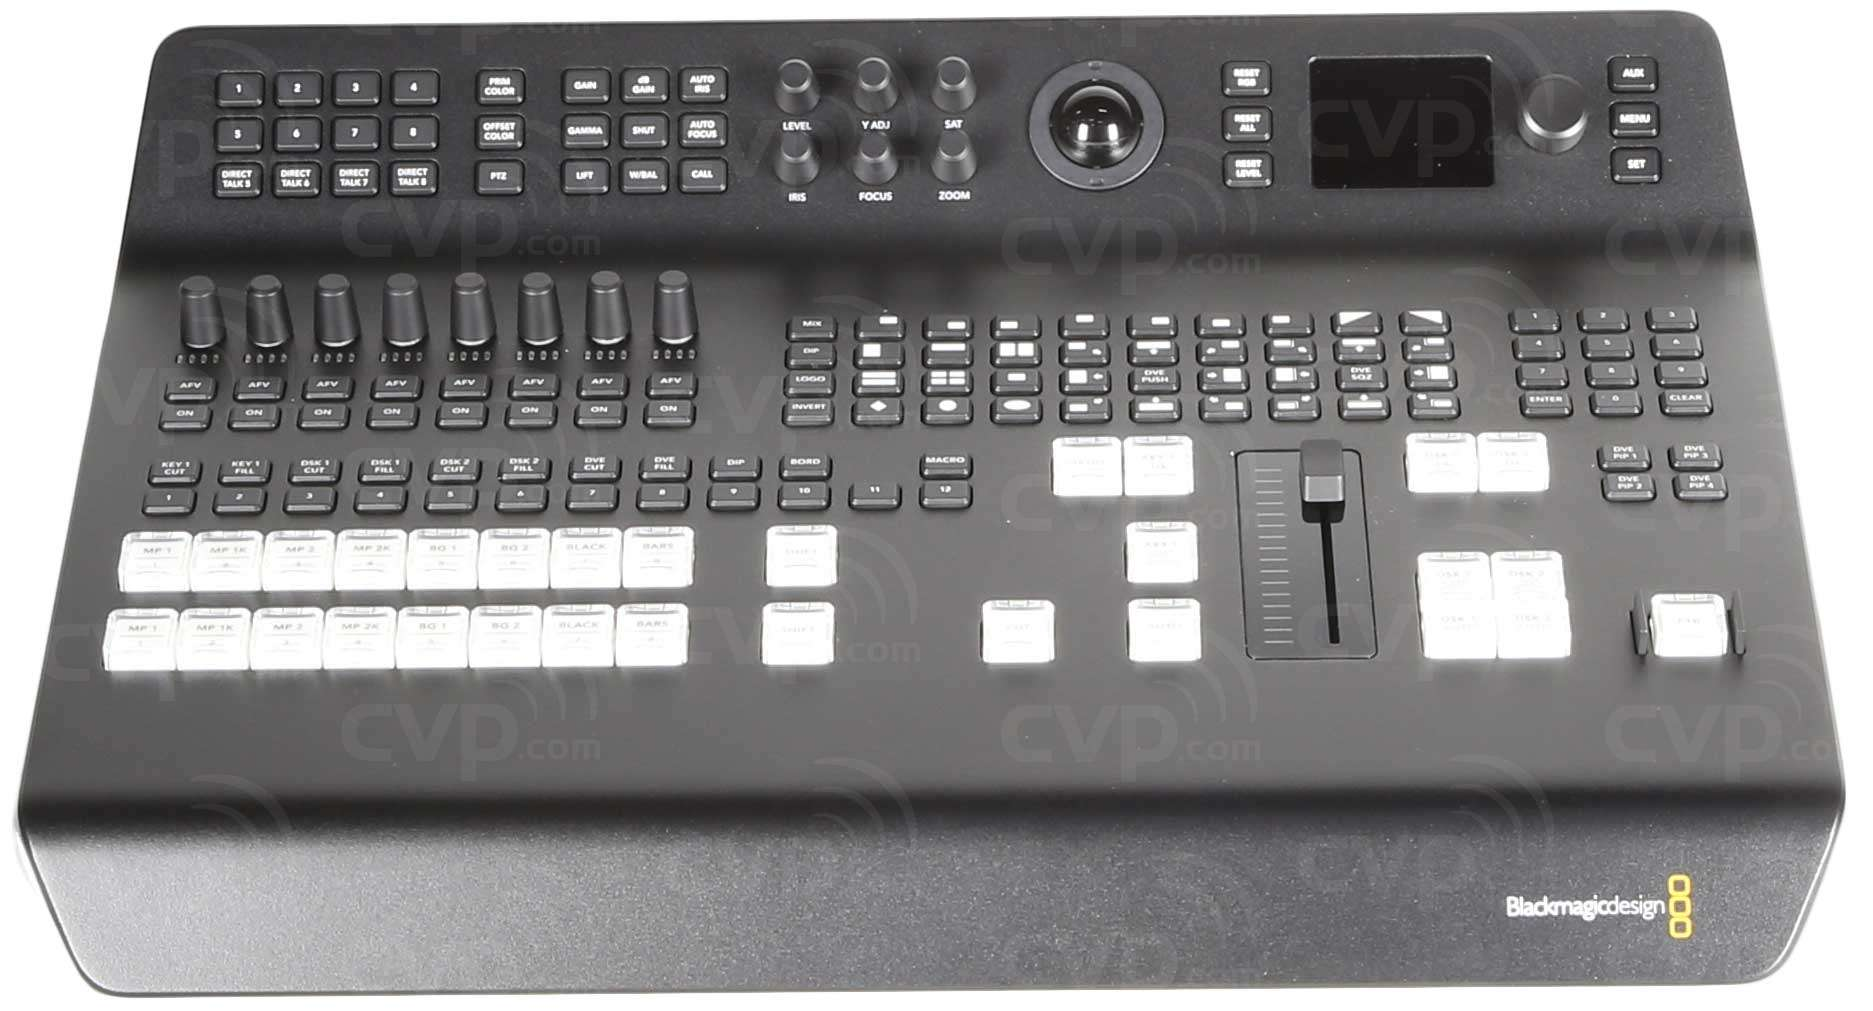 Buy open box blackmagic design bmd swatemtvstuprohd atem buy open box blackmagic design bmd swatemtvstuprohd atem television studio pro hd live production switcher publicscrutiny Gallery